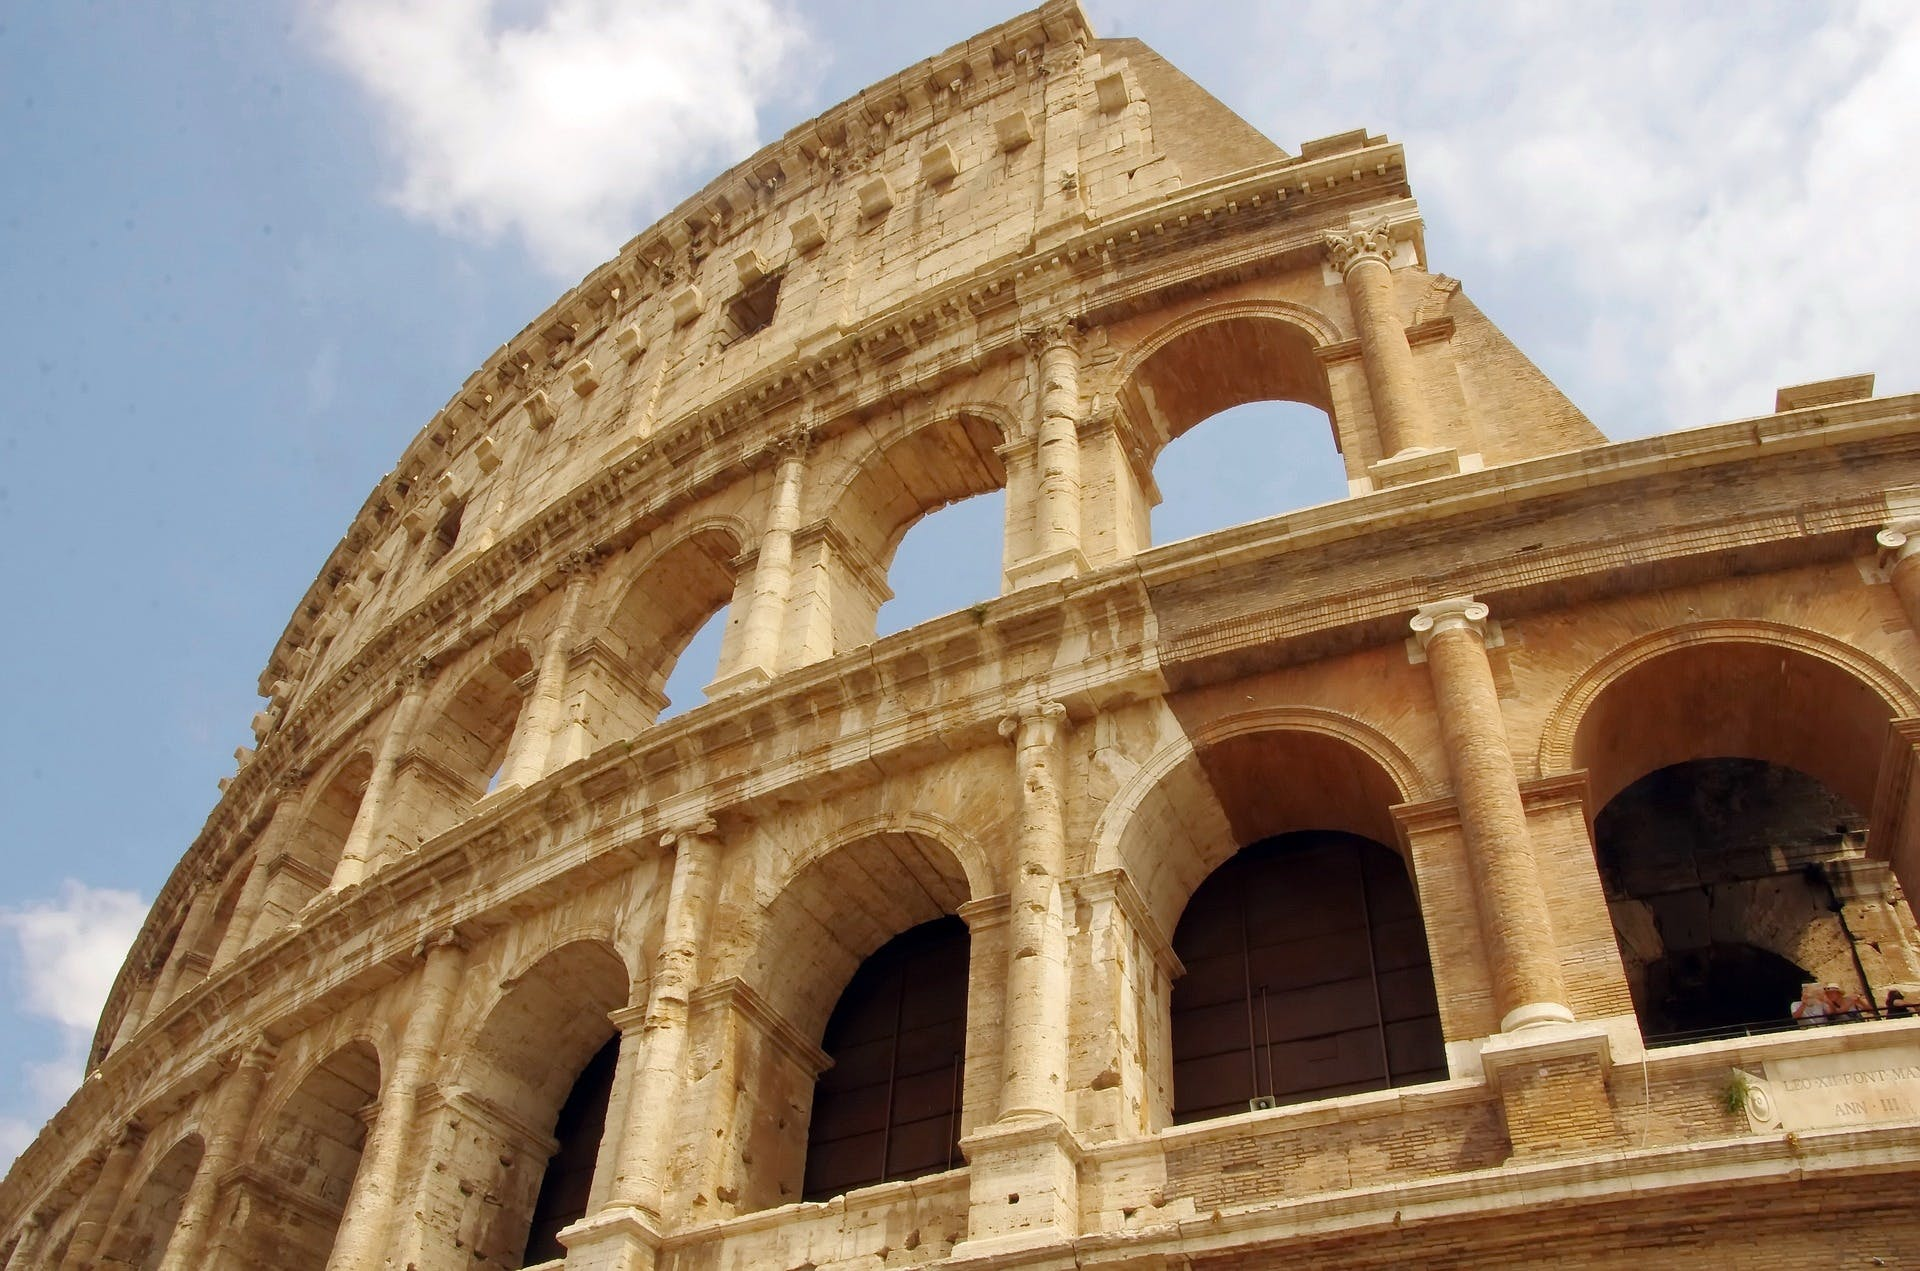 Colosseum, Roman Forum and Palatine Hill ticket and Colosseum audioguide